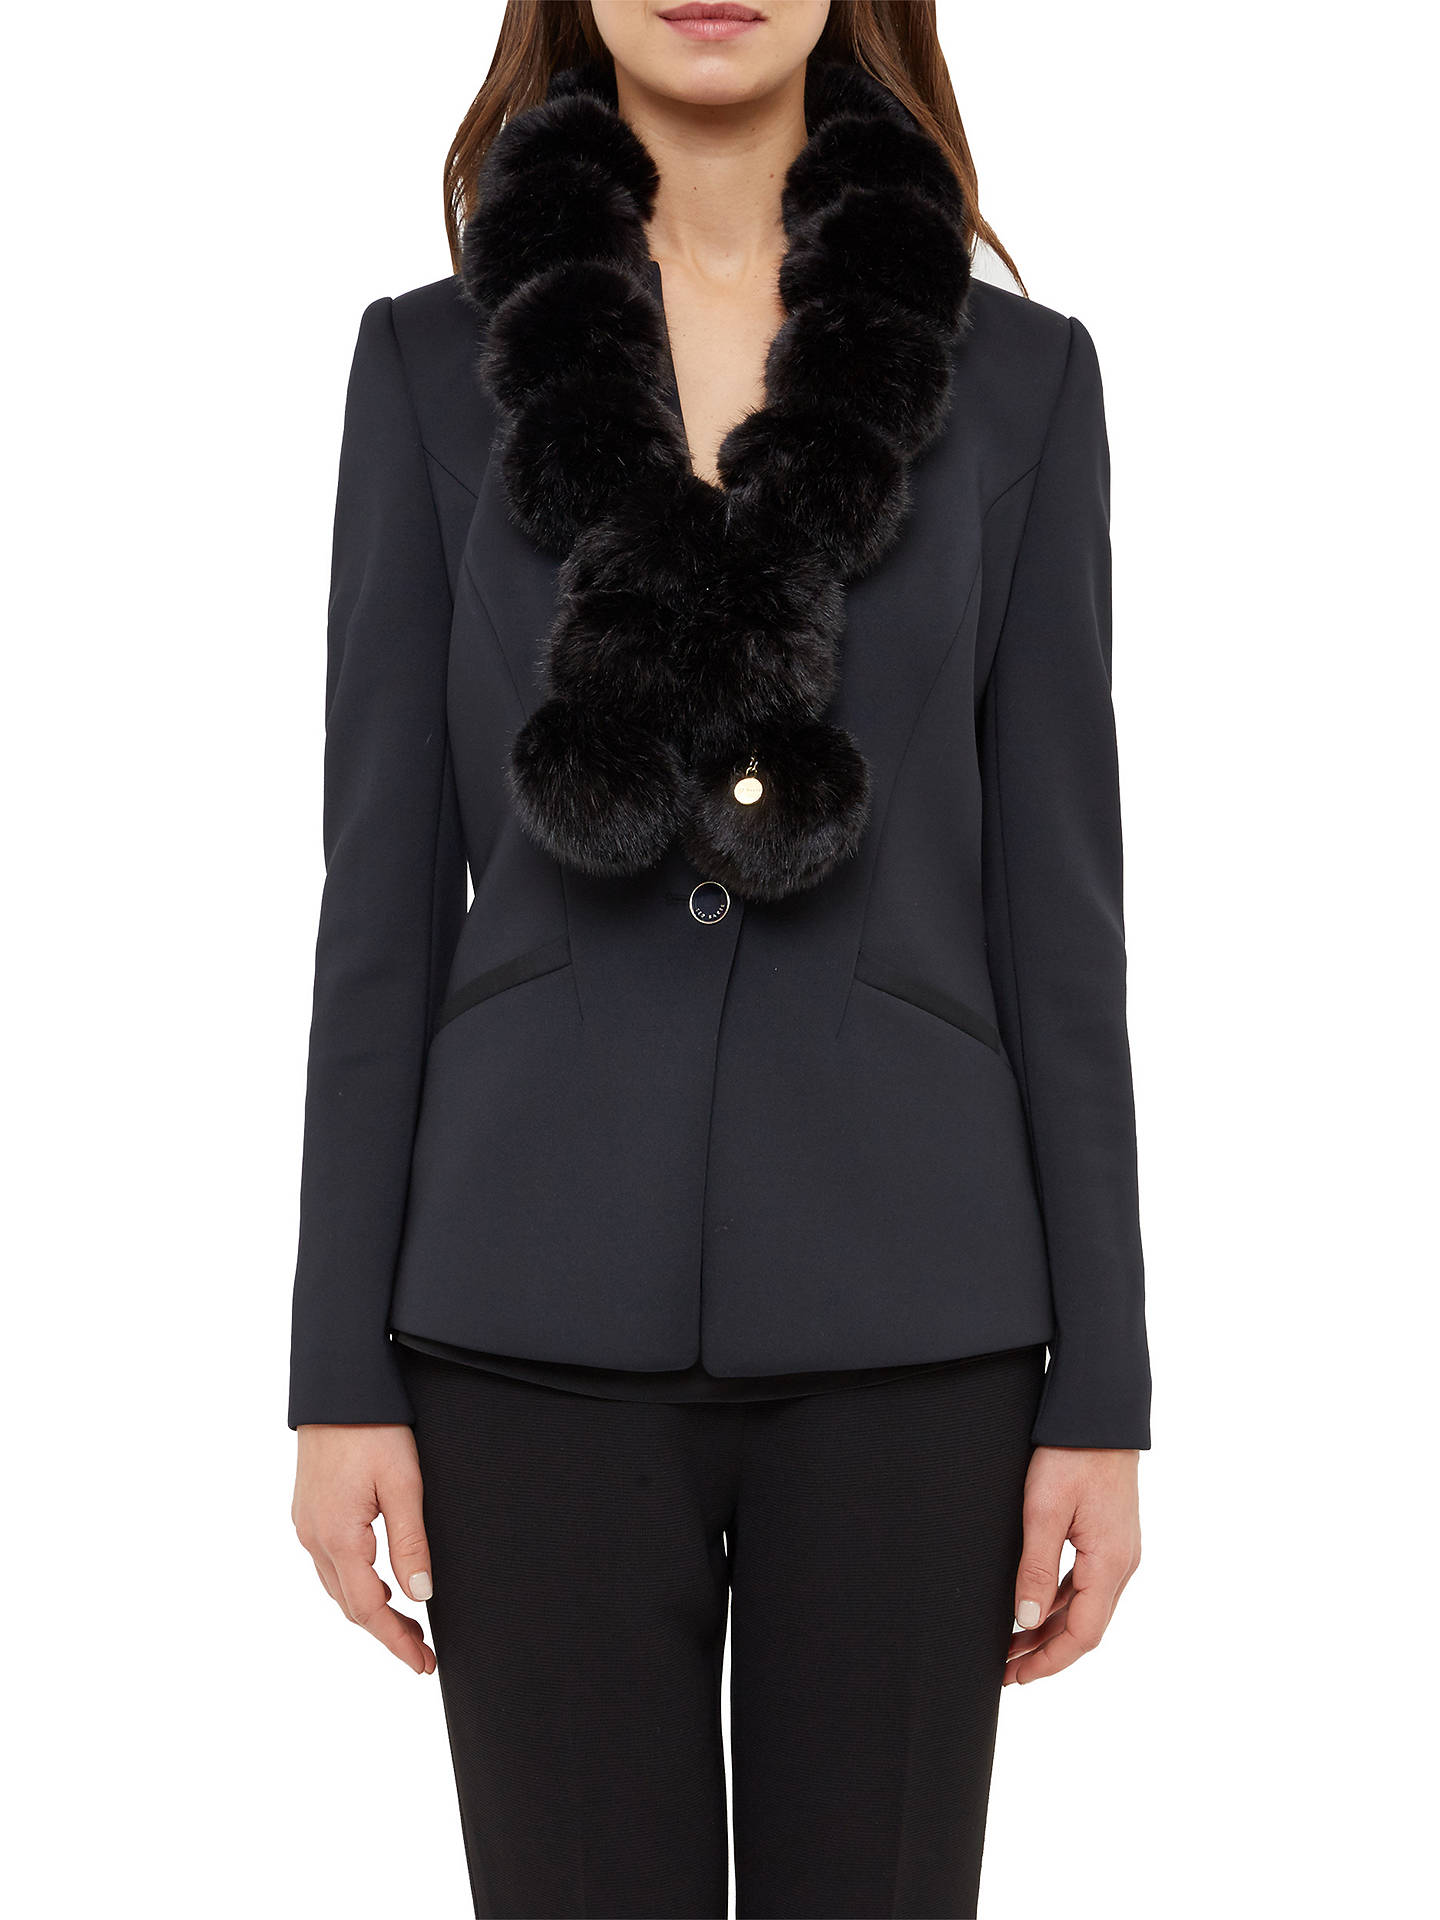 BuyTed Baker Faux Fur Pom Pom Scarf, Black Online at johnlewis.com